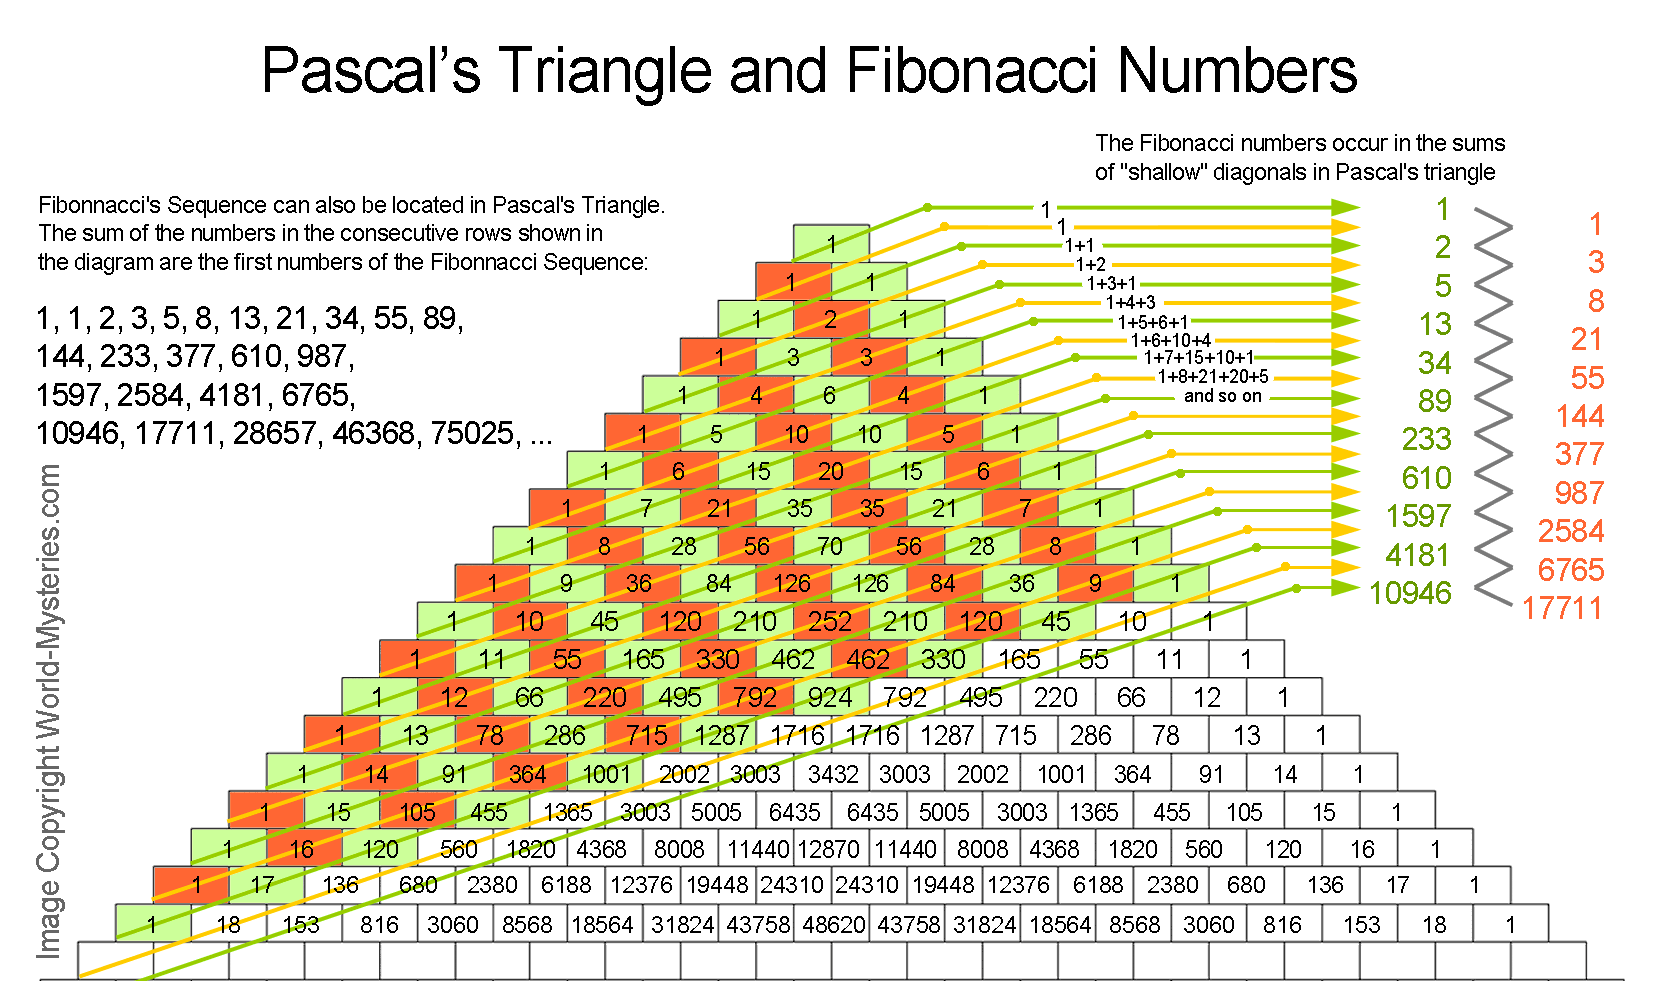 Discovery of the Fibonacci Sequence